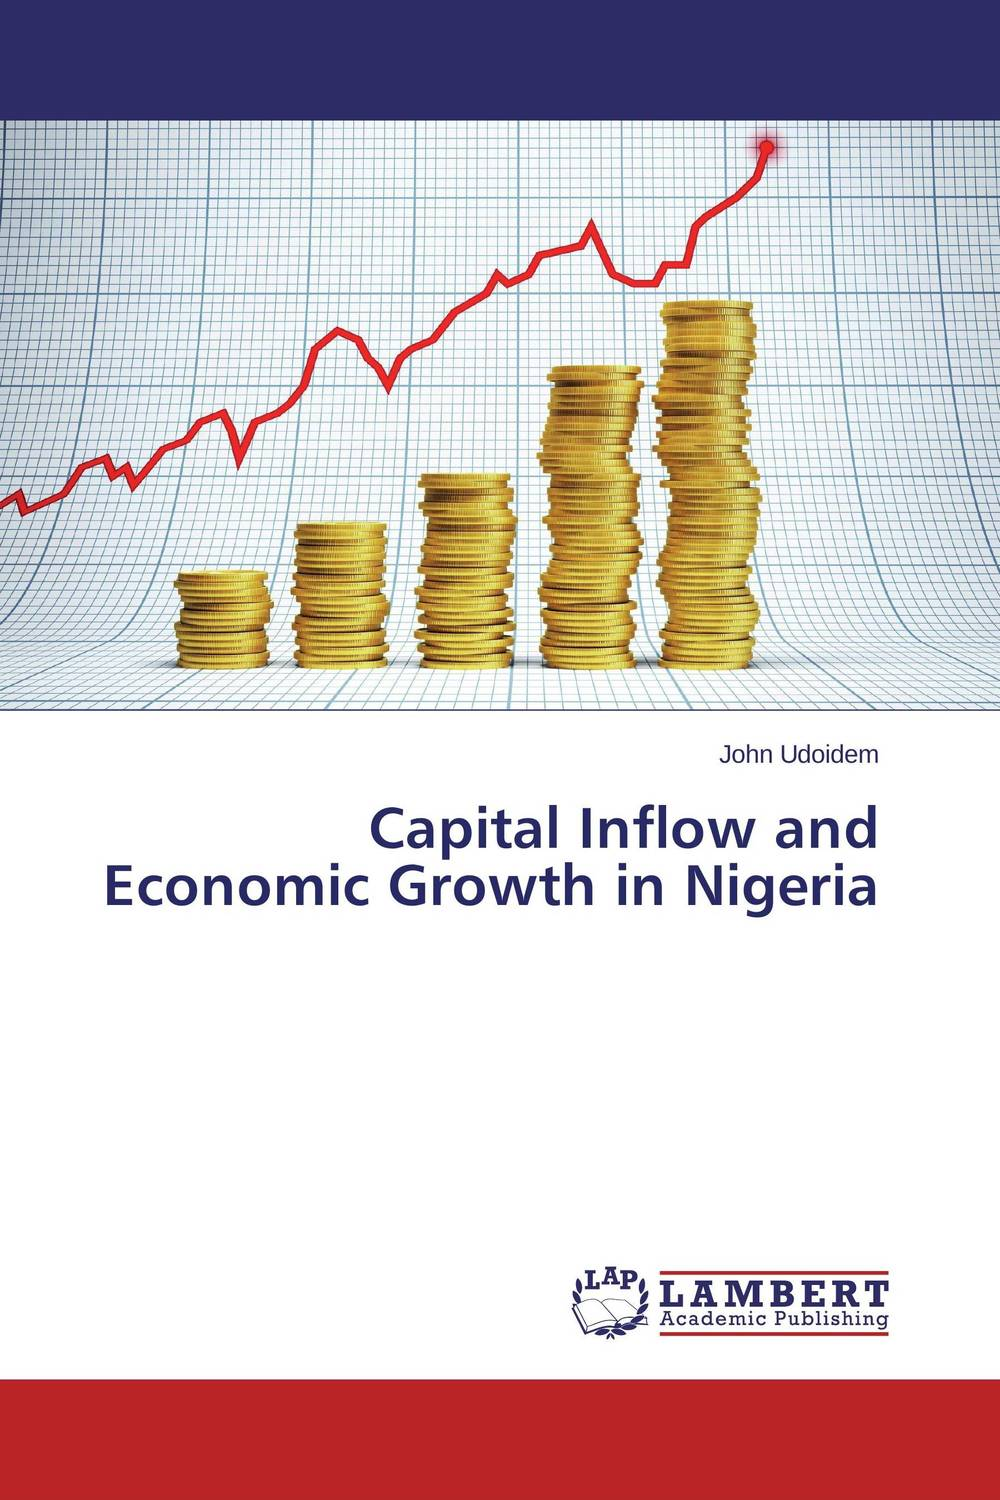 Capital Inflow and Economic Growth in Nigeria economic growth in nigeria